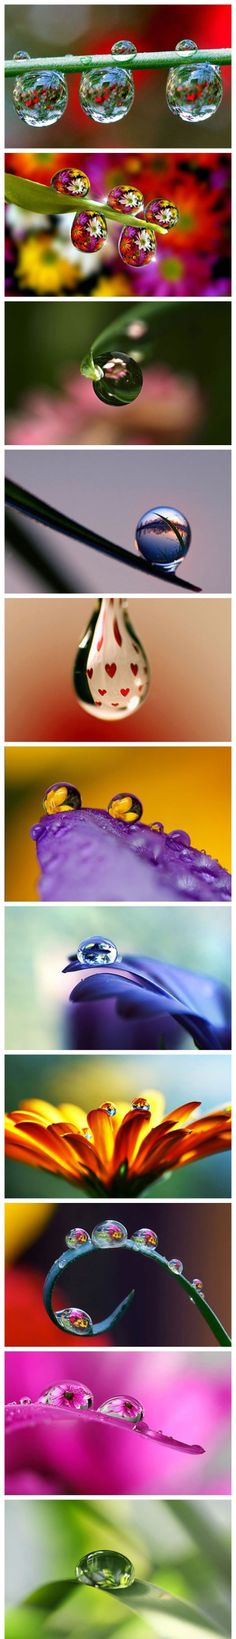 awesome water drops. if tears look like this. you would want to cry forever. sad to say it's not.